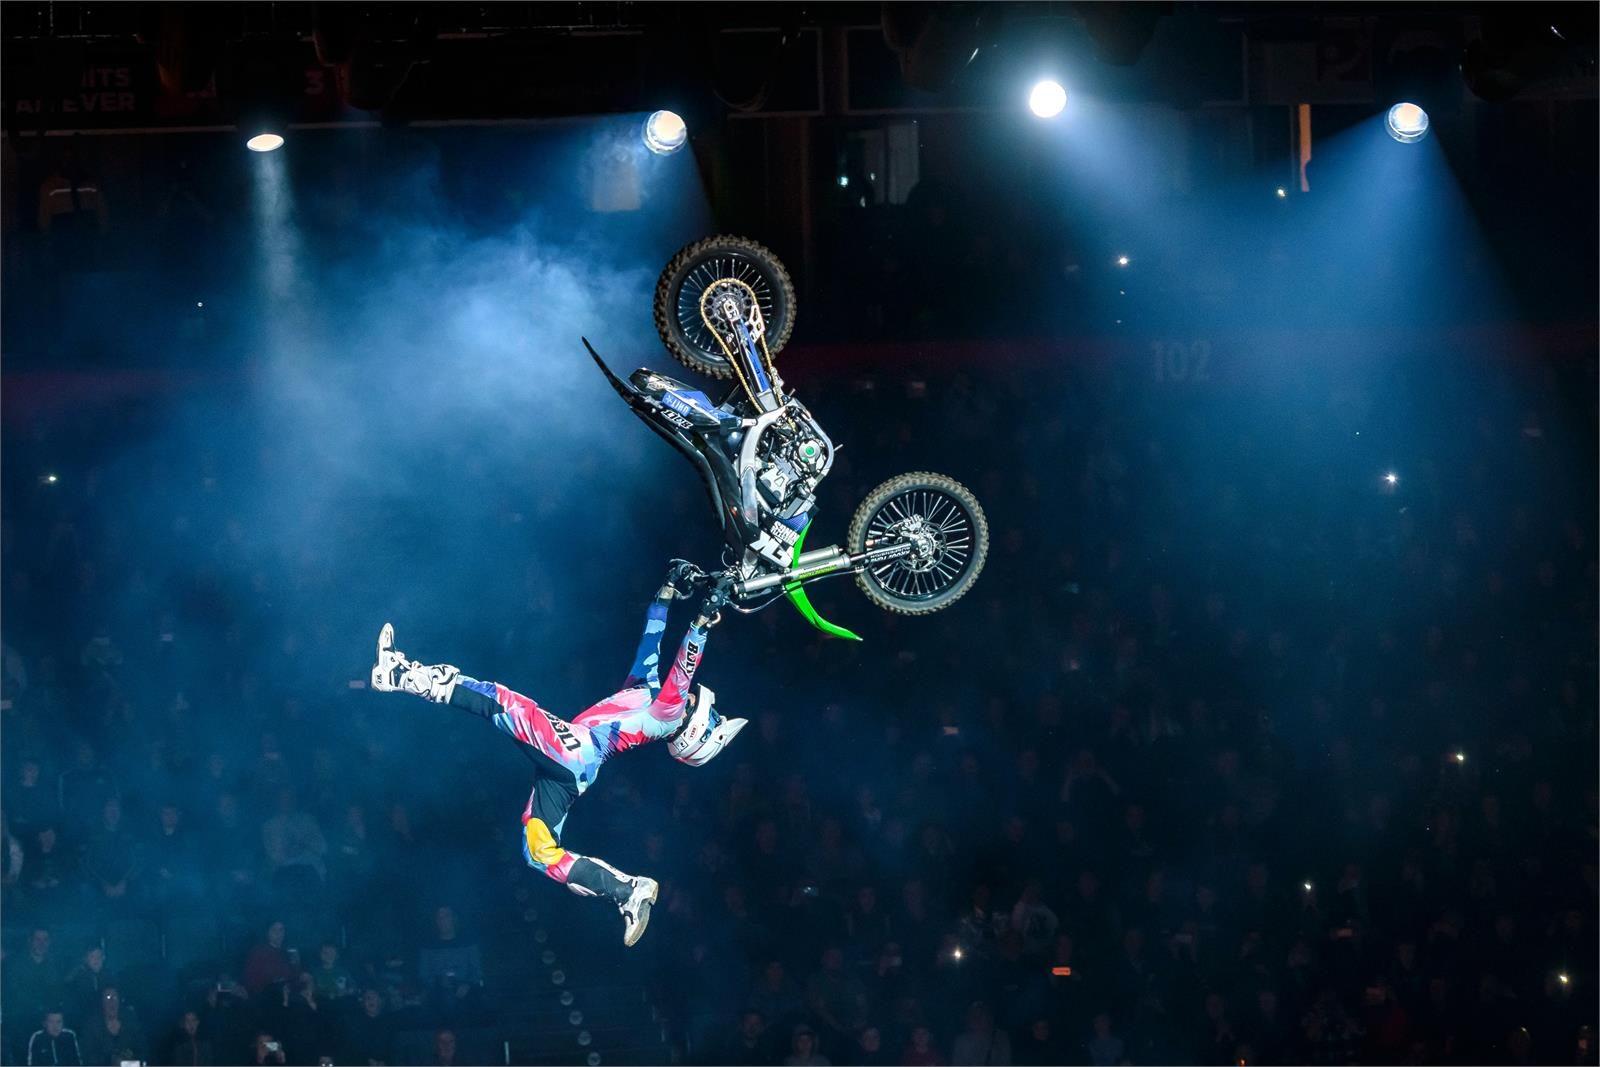 Aussie FMX-ace Ryan Brown.